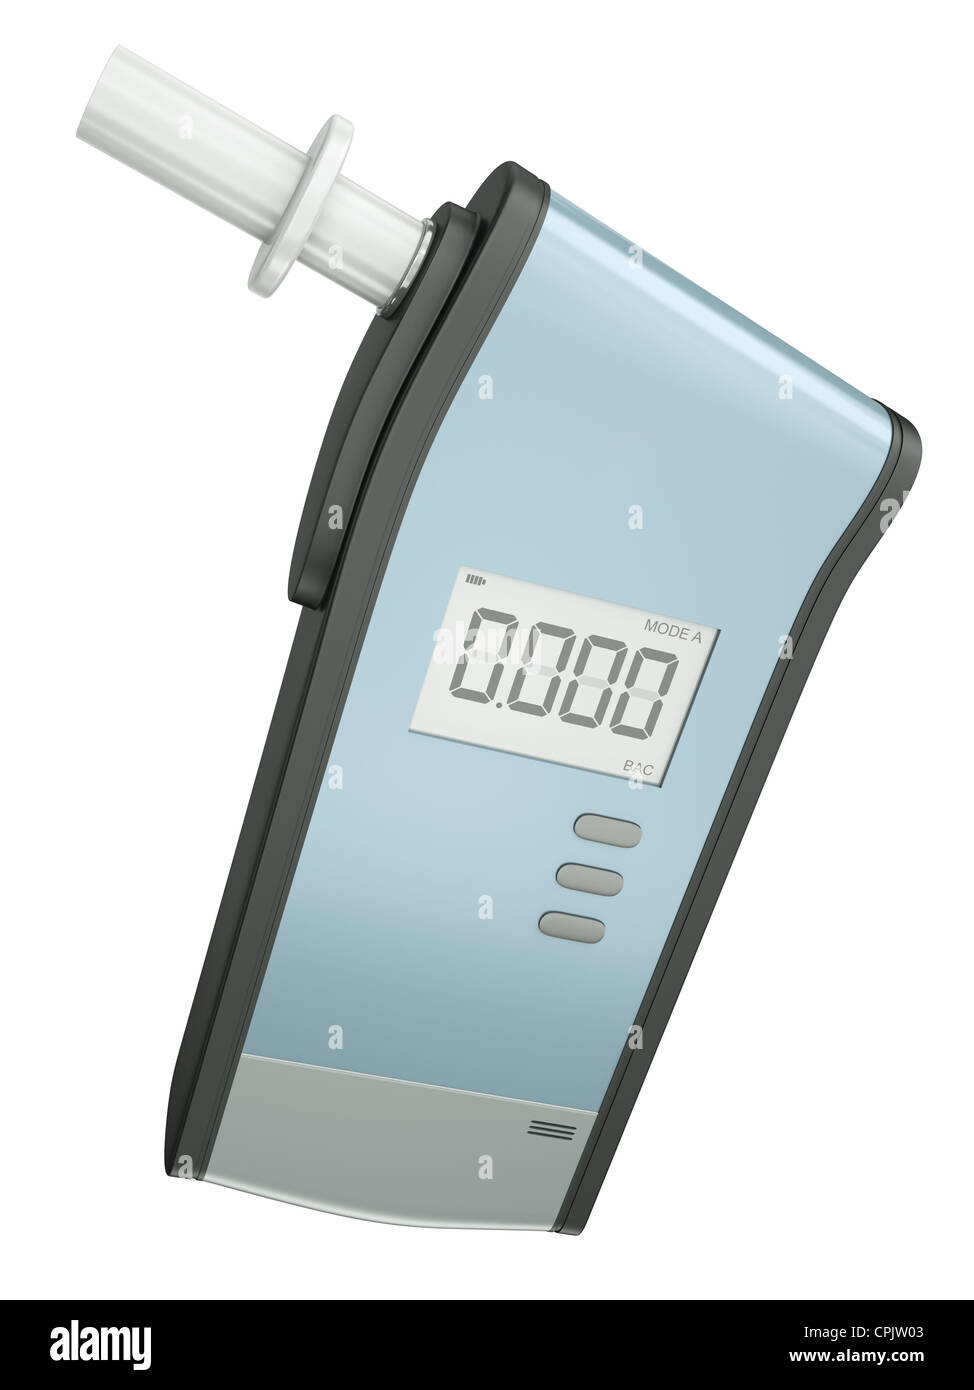 Breathyzer For Measuring Blood Alcohol Content Isolated On White Background 3d Render